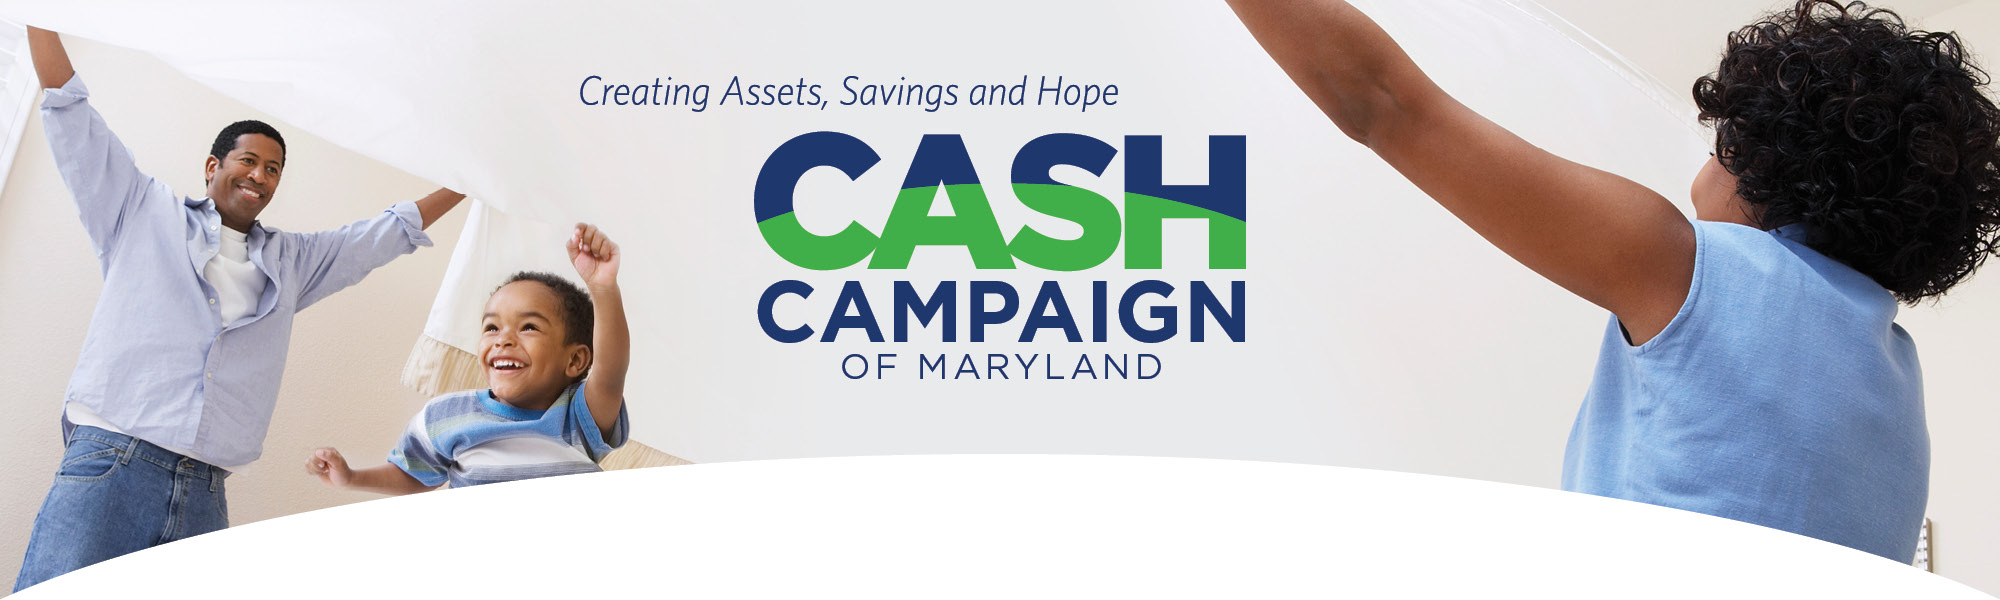 Home - CASH Campaign of Maryland - African American family cheering